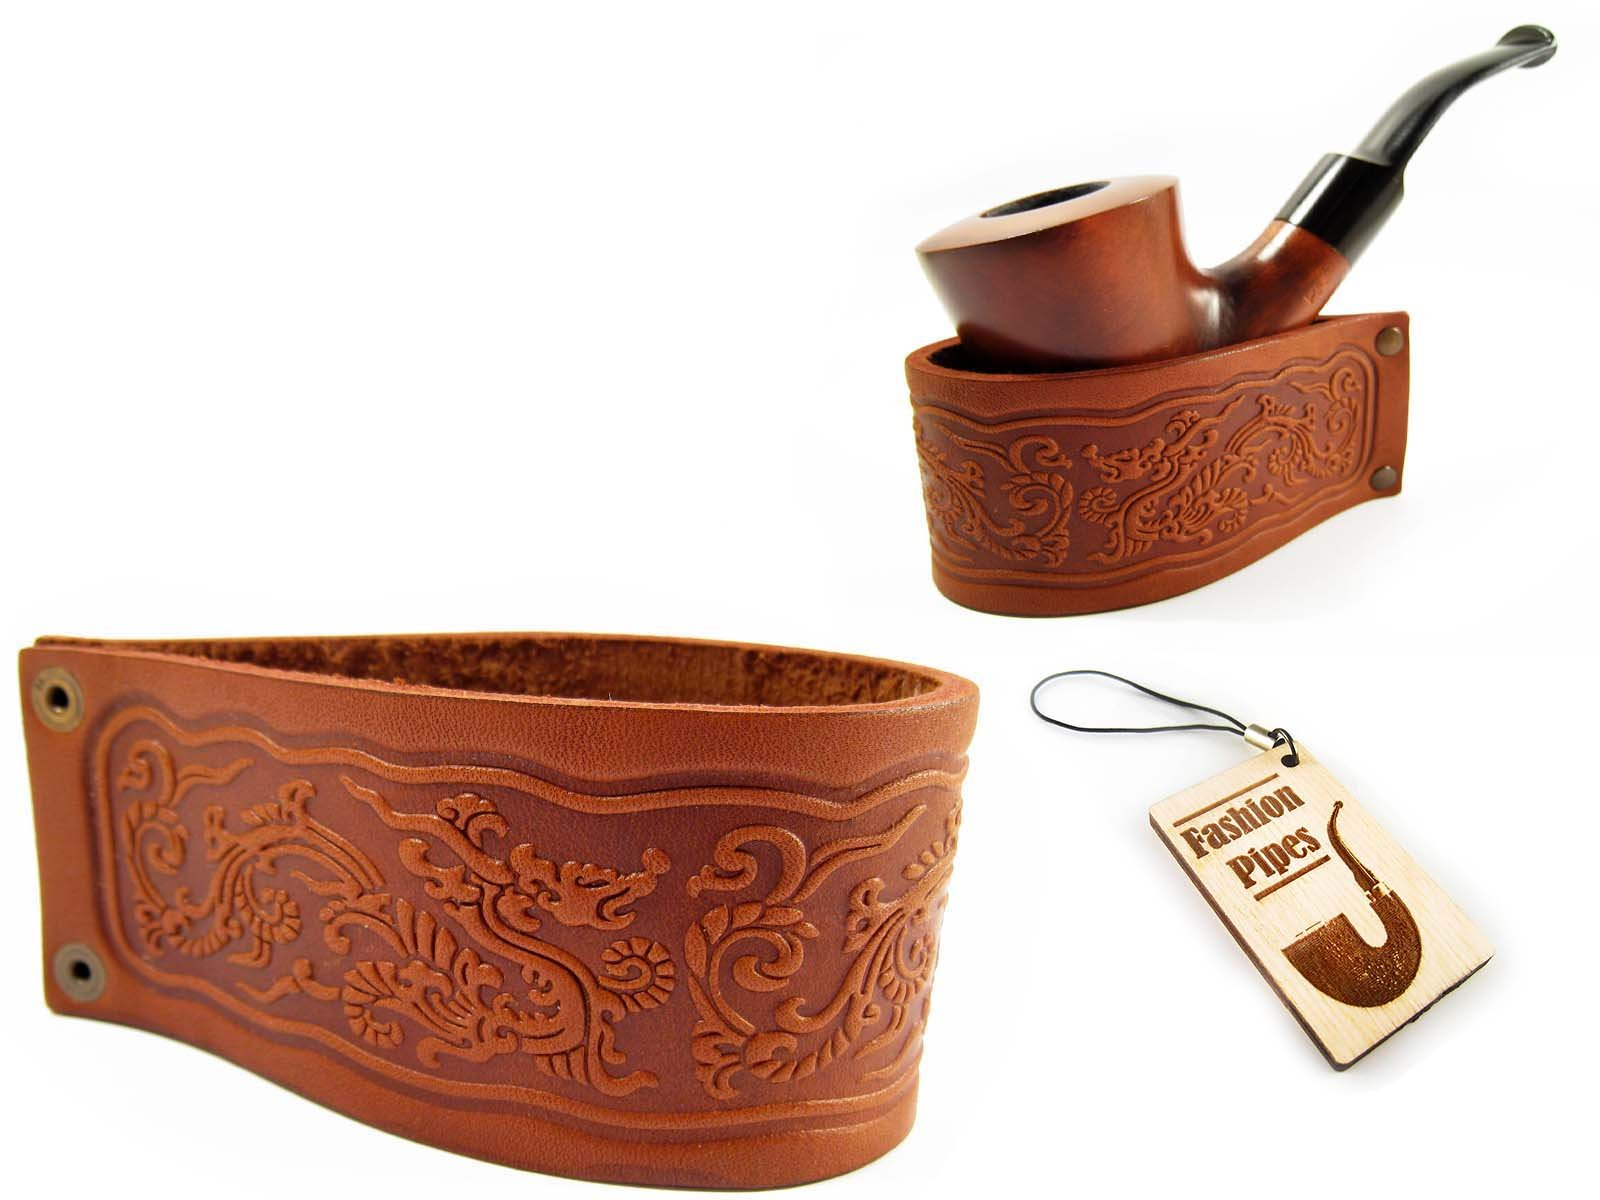 New Genuine Leather Pipe Stand Rack Holder Rest for Tobacco Smoking Pipe, Fits Most Pipes, Handmade (BIG) by Fashion Pipes